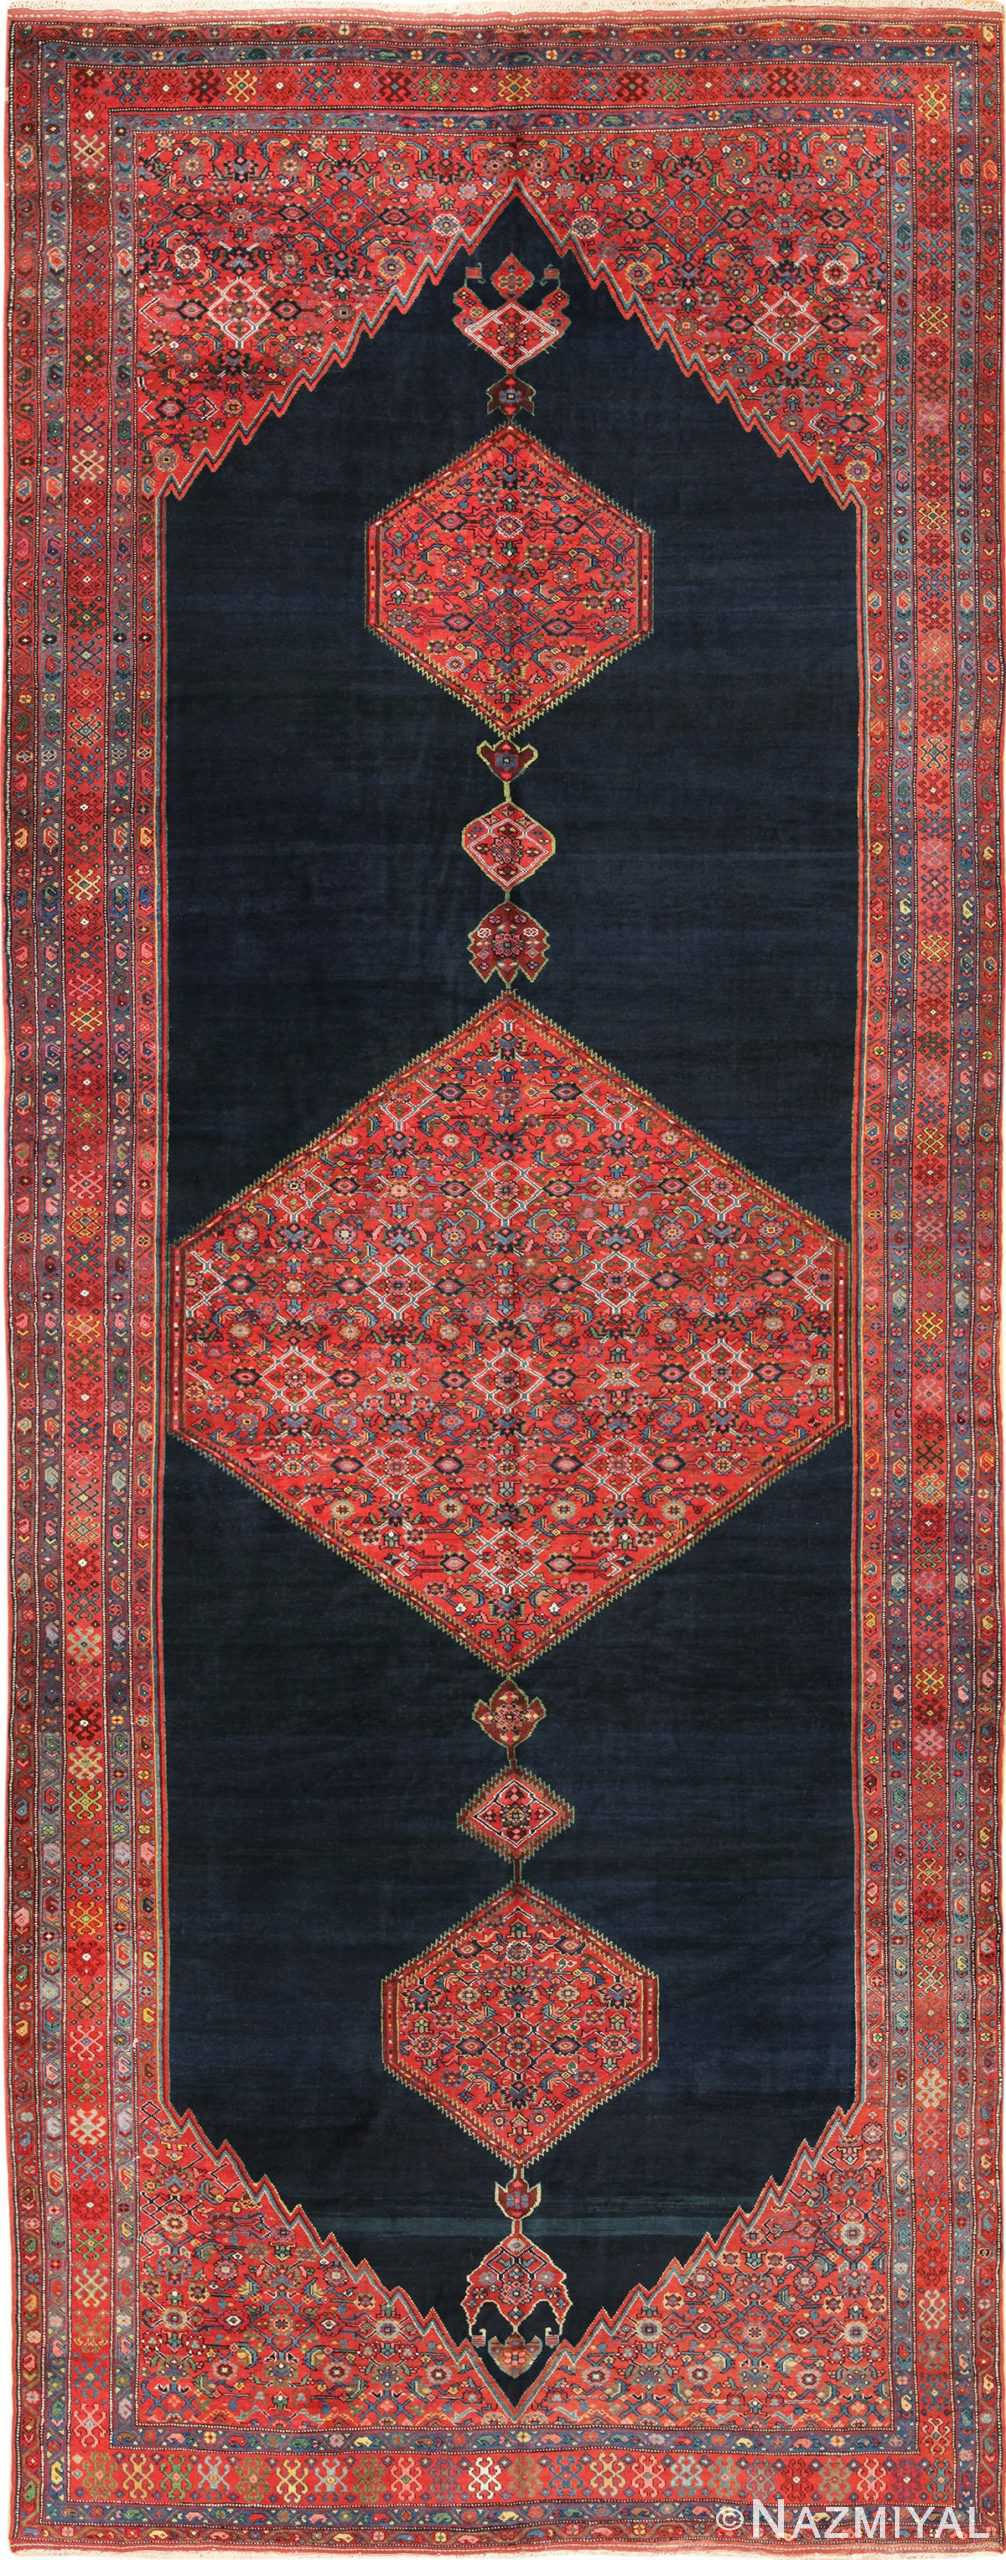 Wide Hallway Tribal Antique Persian Farahan Rug 49754 - Nazmiyal